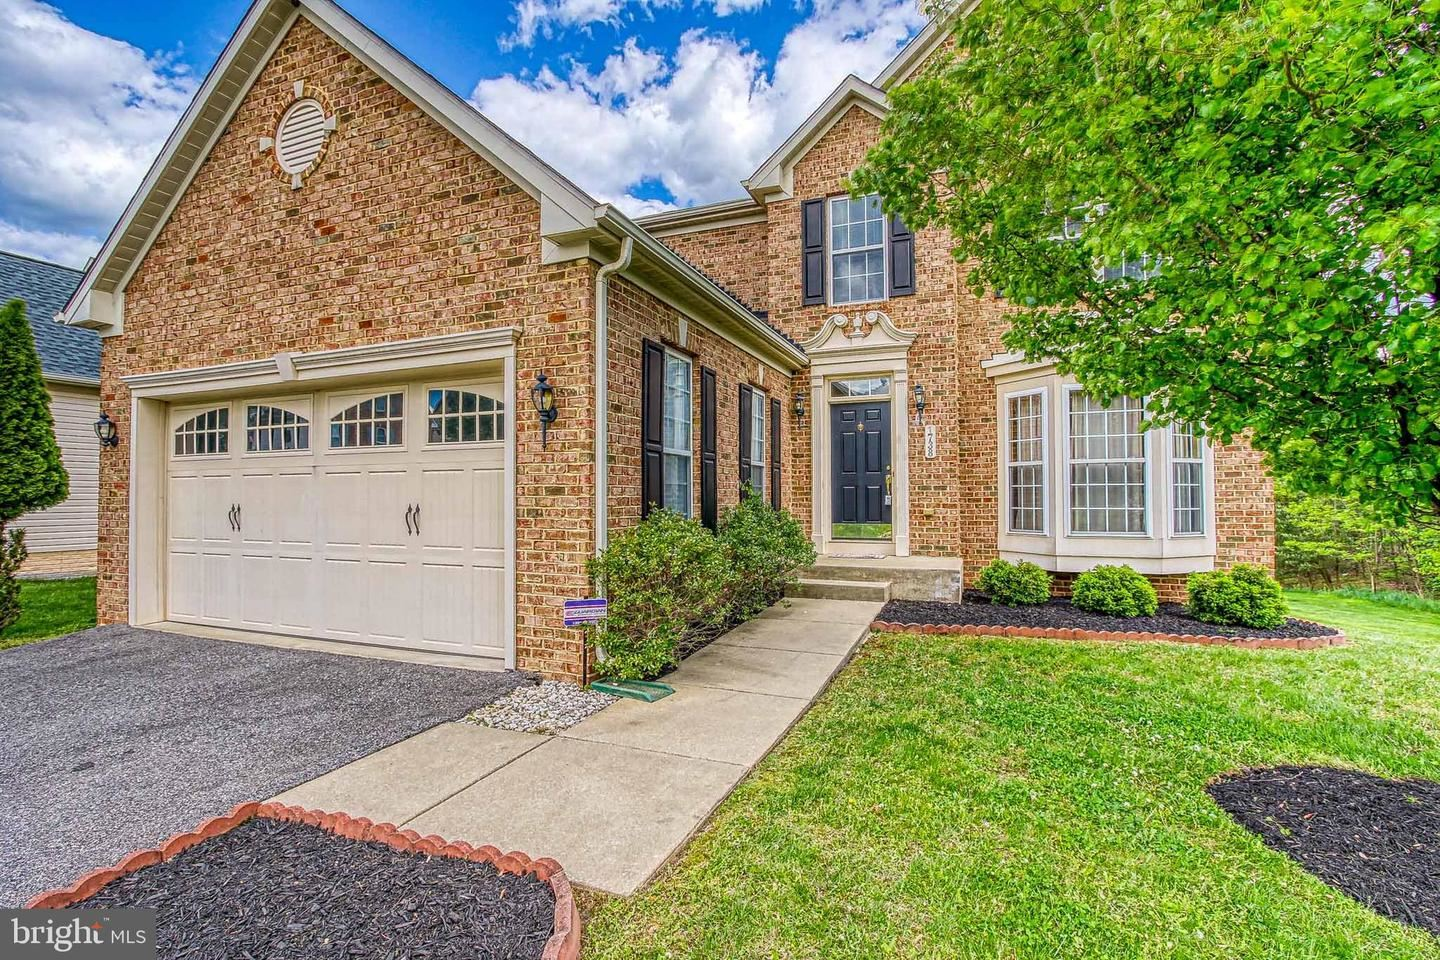 1738 ALLERFORD DR, Hanover, MD 21076 - MLS#: MDAA466134